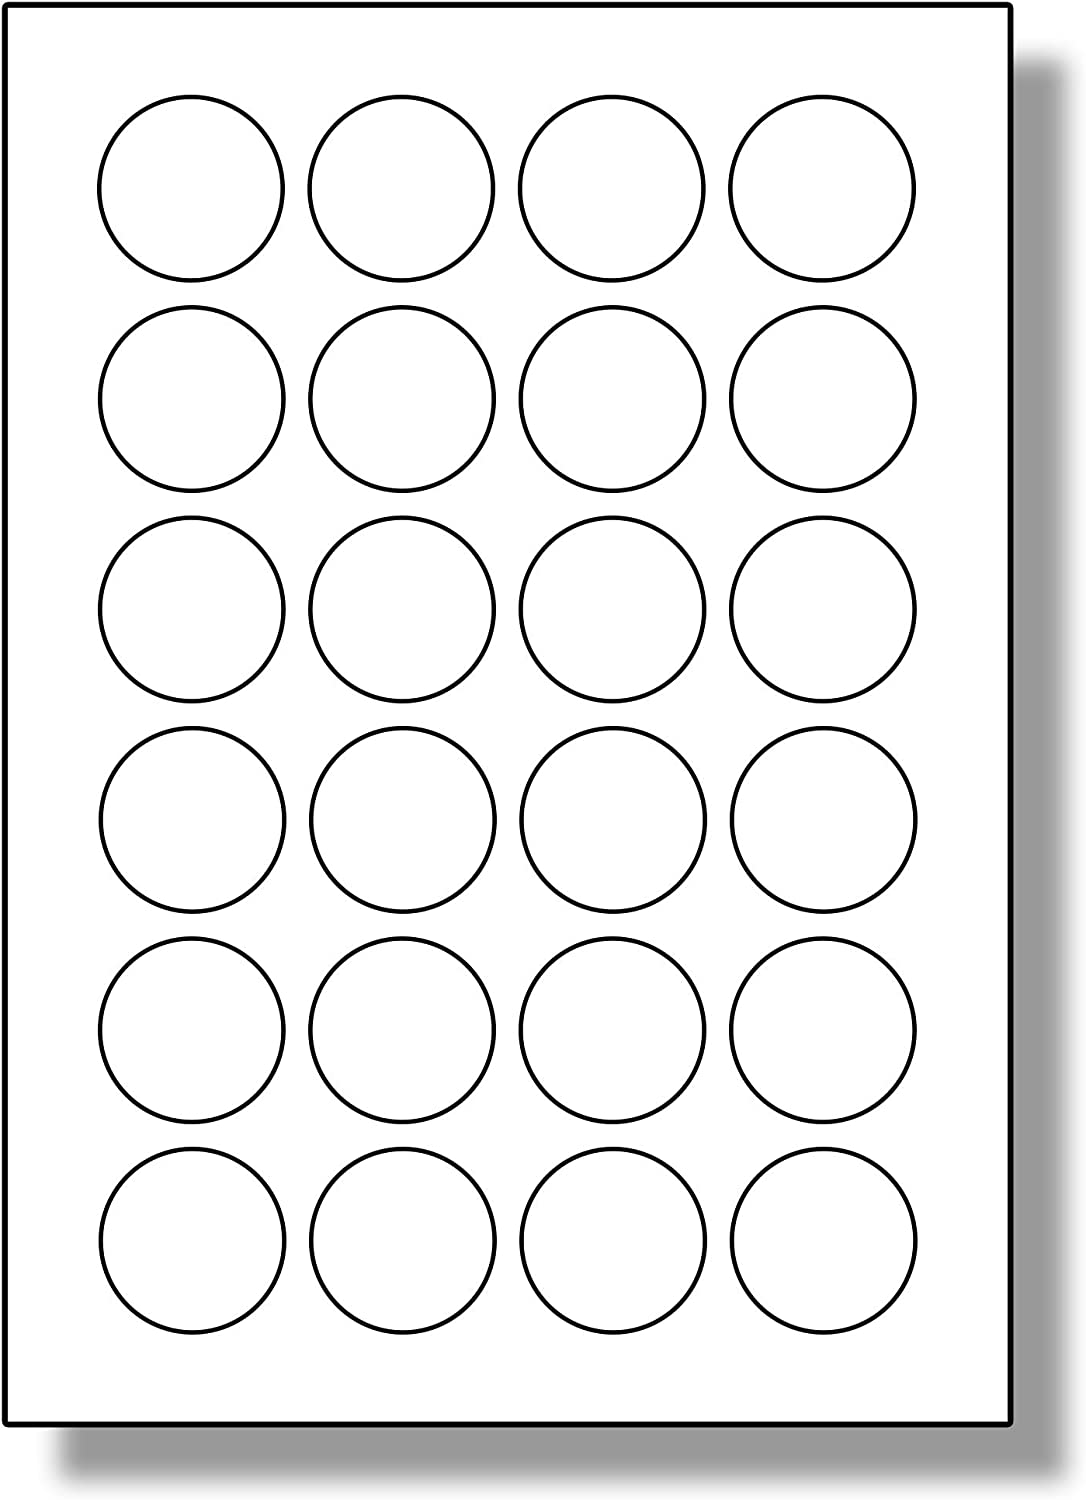 21 Per Page/Sheet, 21 Sheets (221 ROUND Sticky Labels), Label With Word Label Template 12 Per Sheet